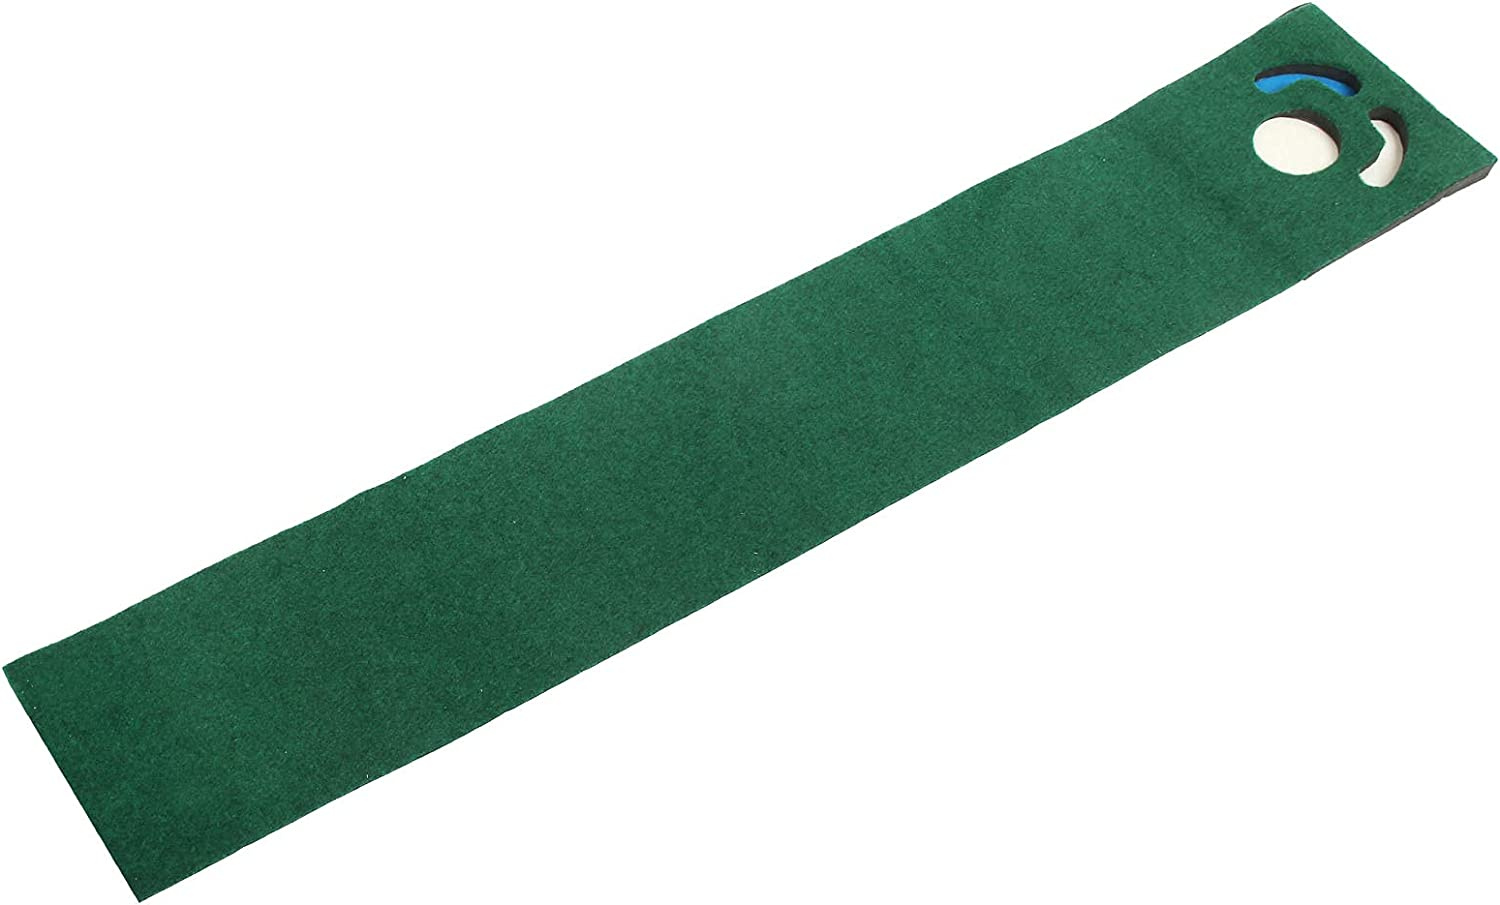 Golf Putting Mat Indoor 35% OFF Hitting Turf Go Limited time sale